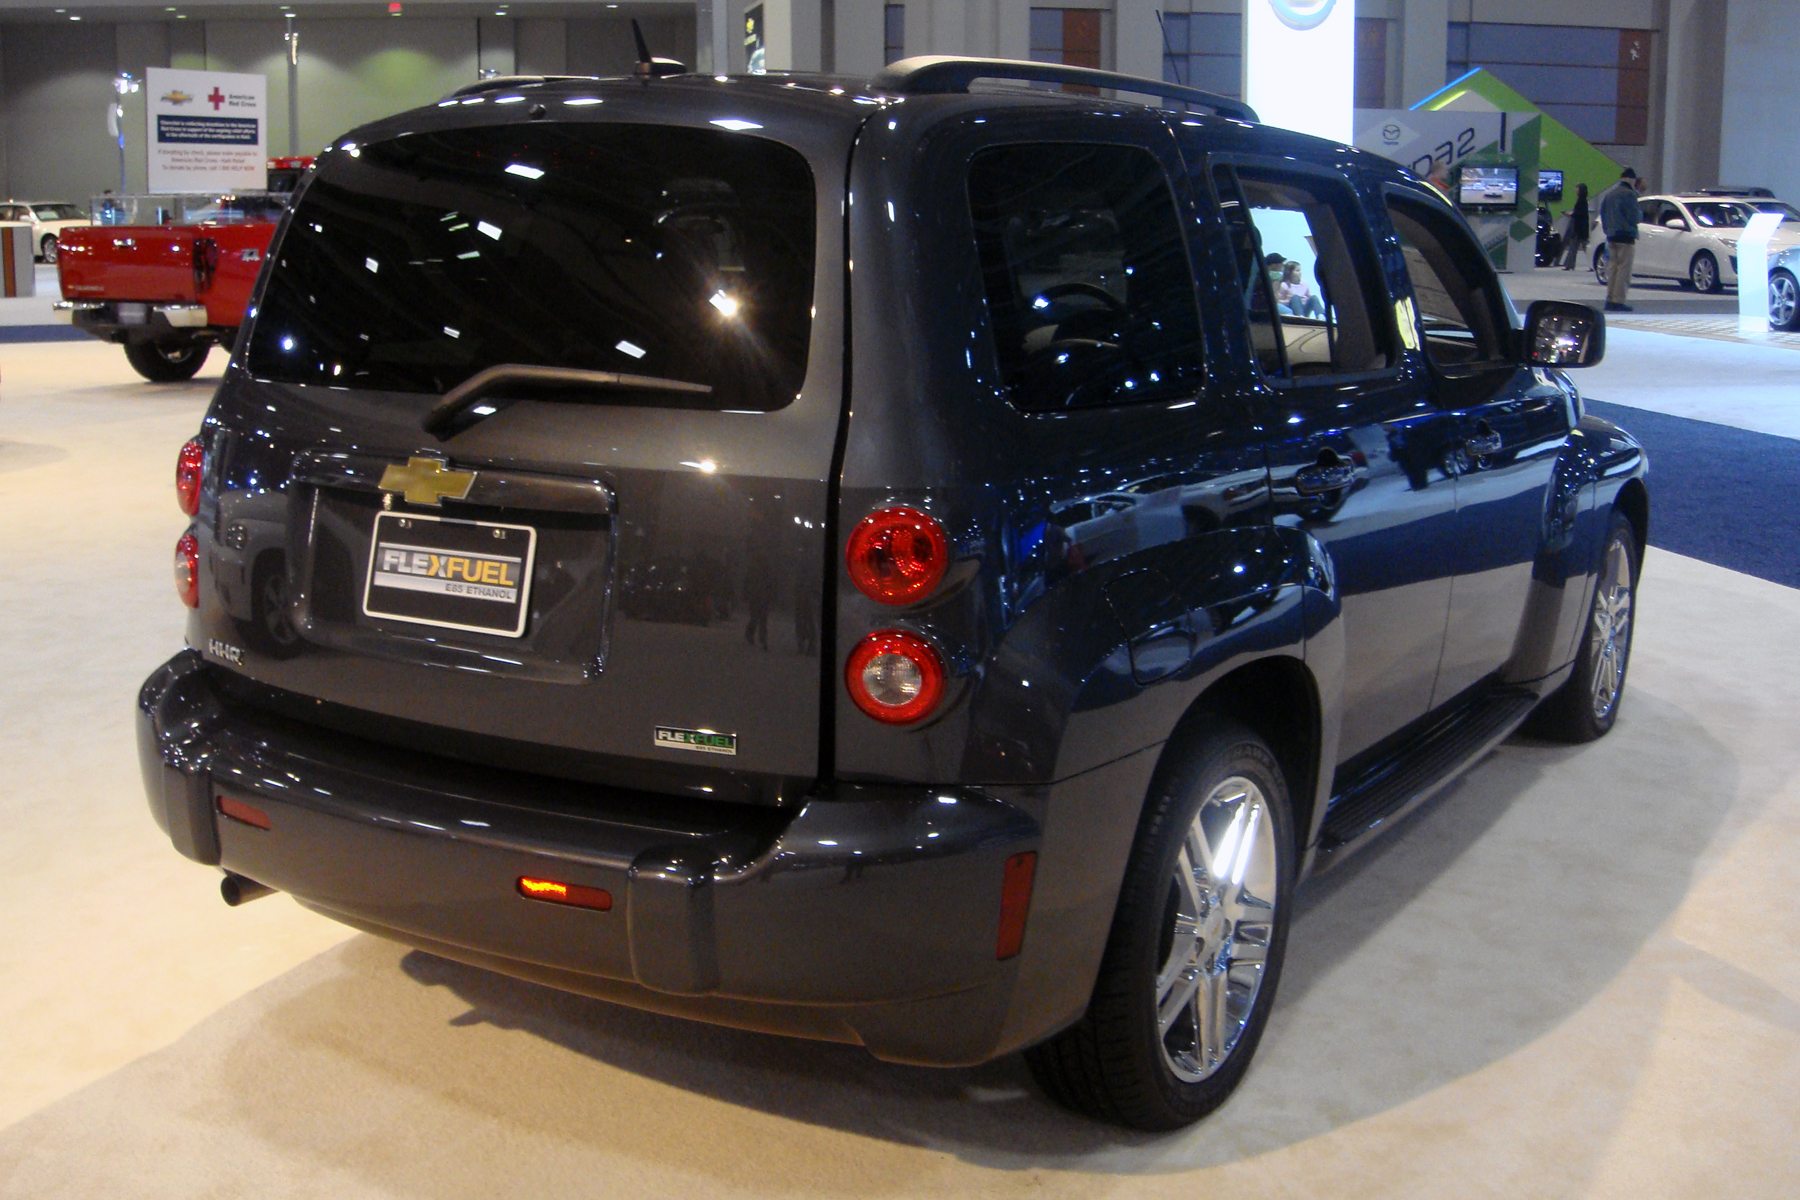 File Chevrolet Hhr Flex Fuel Was 2010 8837 Jpg Wikimedia Commons